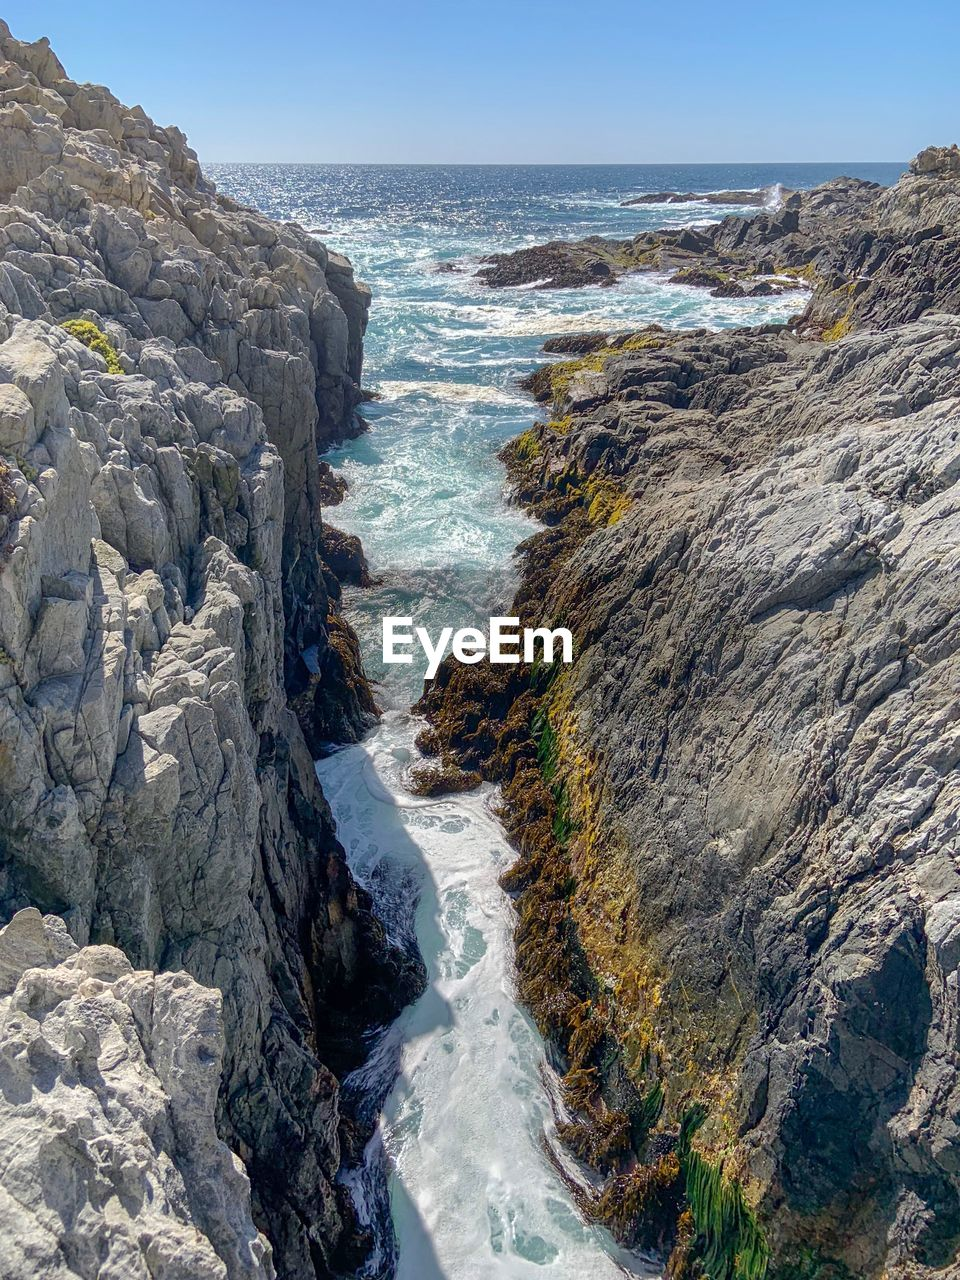 water, sea, rock, beauty in nature, rock - object, solid, motion, scenics - nature, beach, sky, nature, land, aquatic sport, rock formation, wave, surfing, horizon, day, horizon over water, outdoors, rocky coastline, breaking, power in nature, eroded